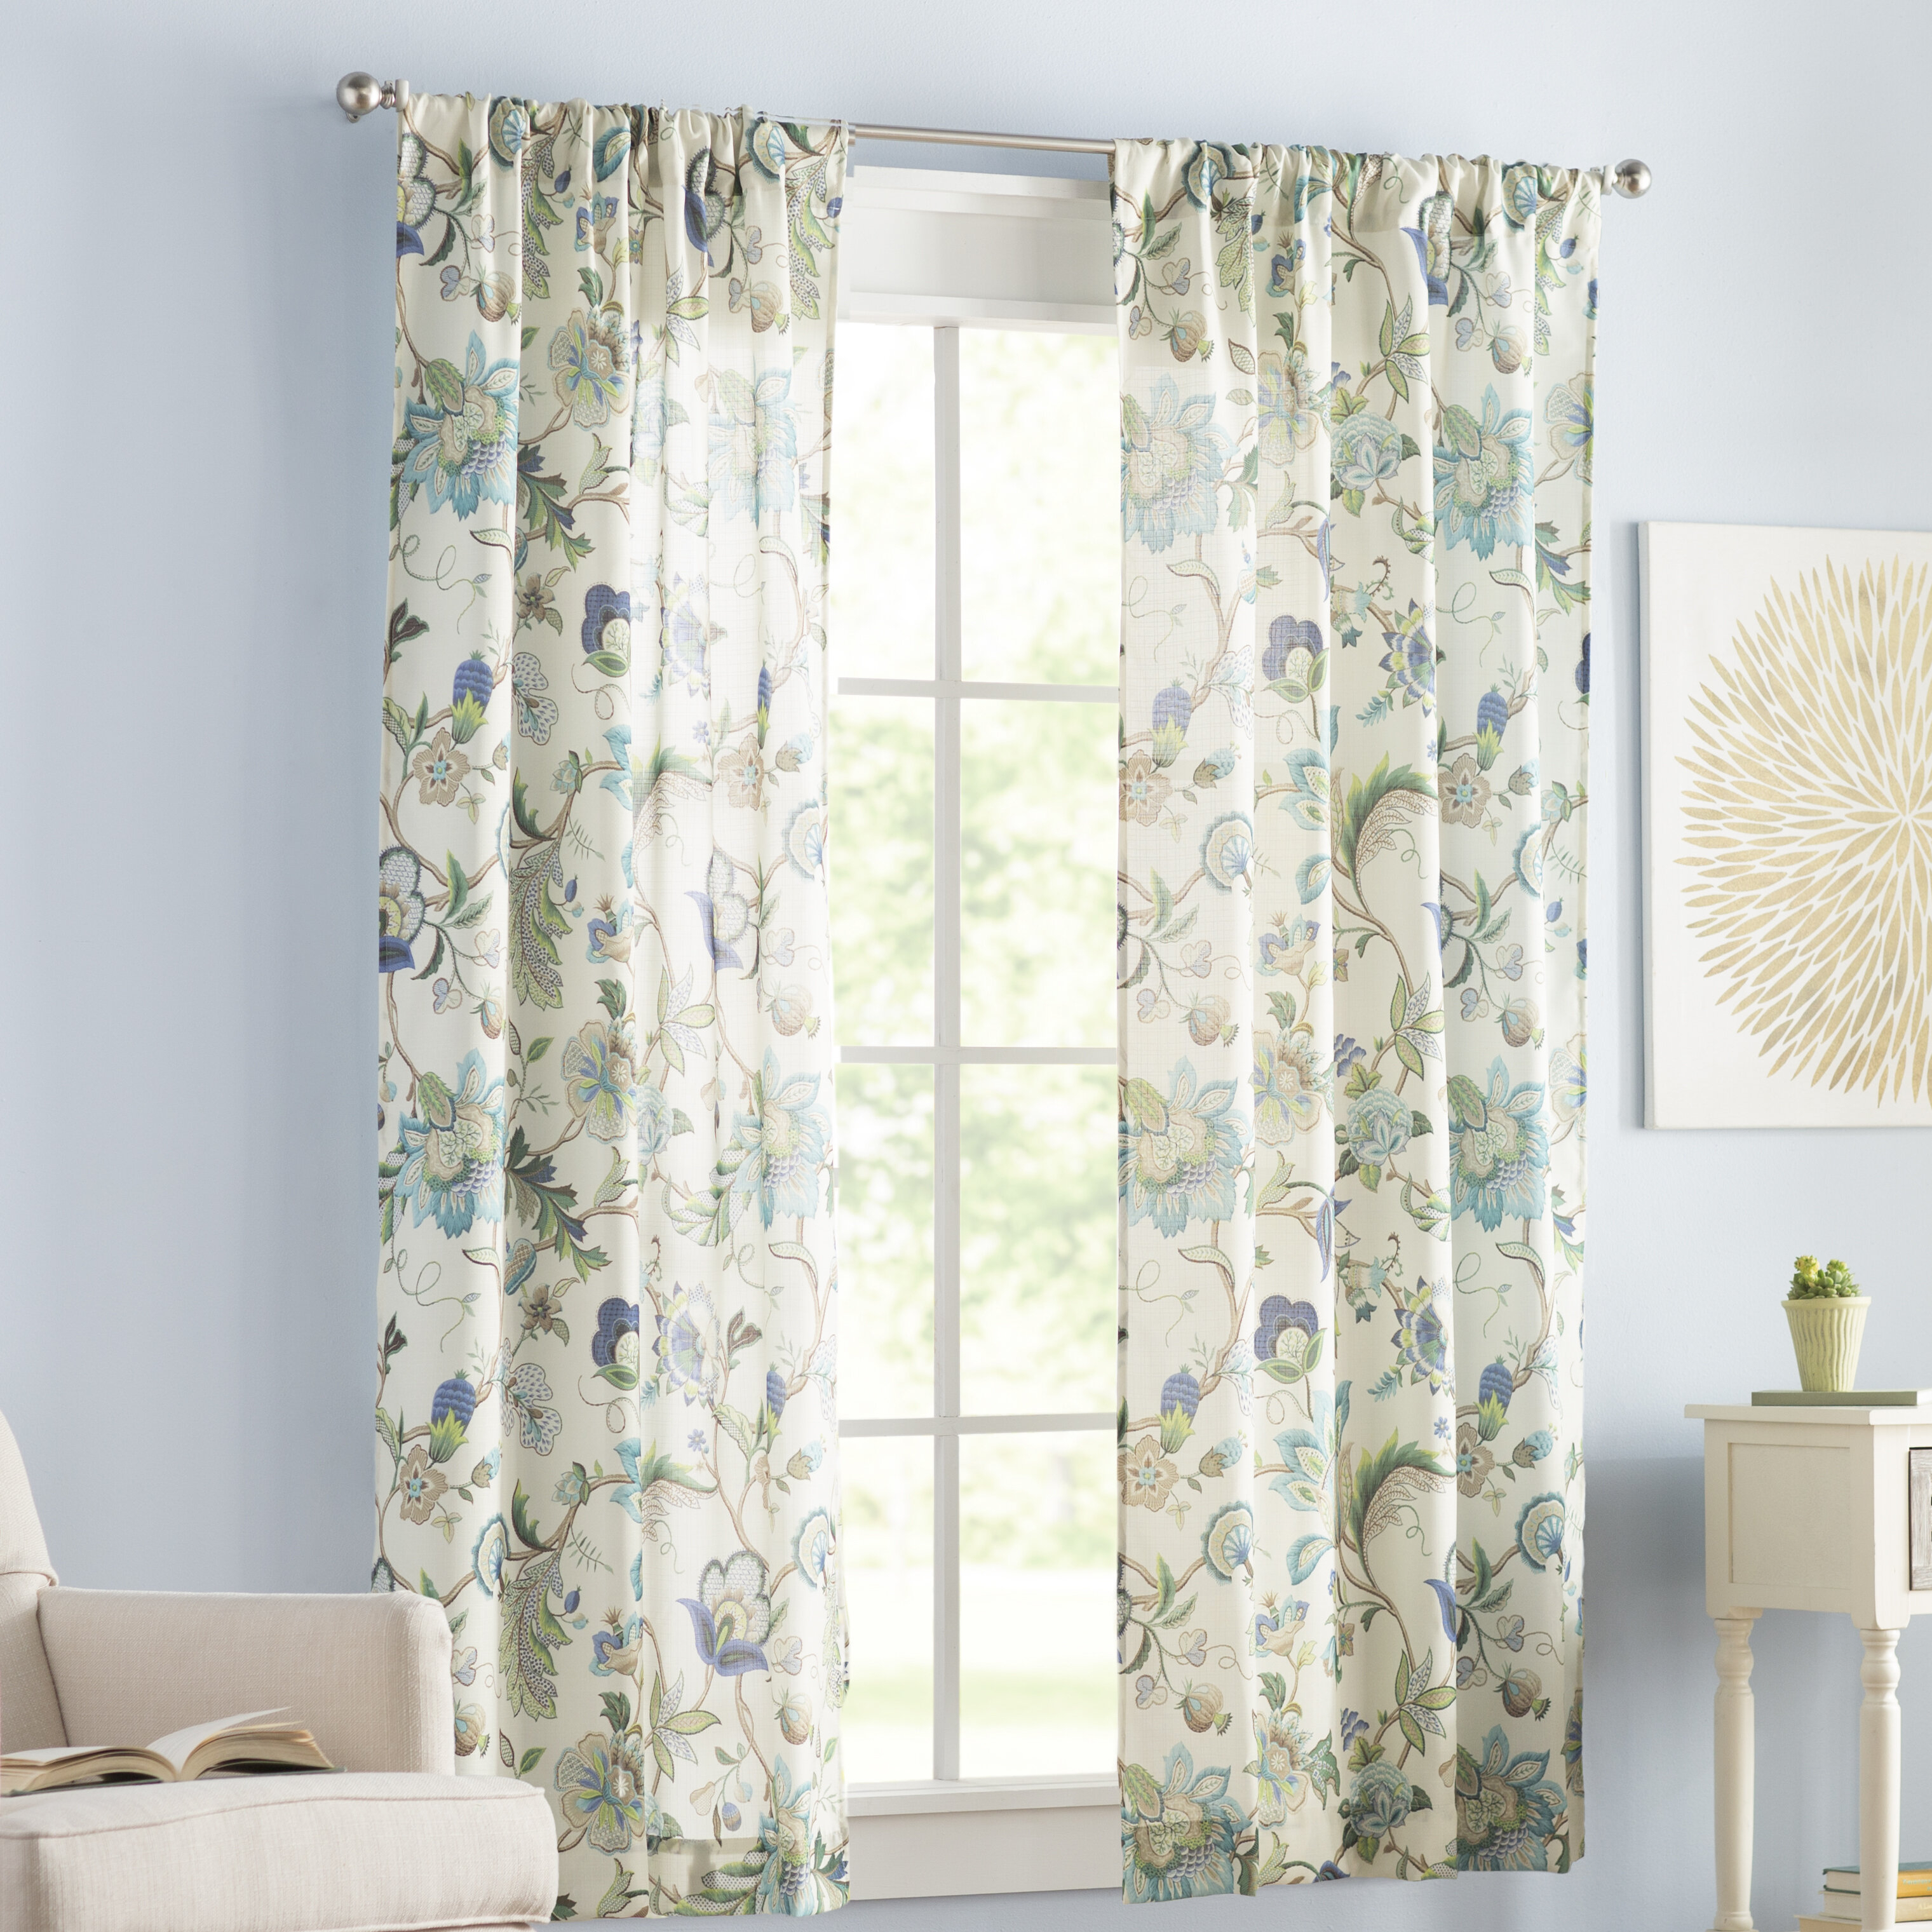 Tuckerman Floral/flower Rod Pocket Panel Pair For Whitman Curtain Panel Pairs (View 18 of 30)